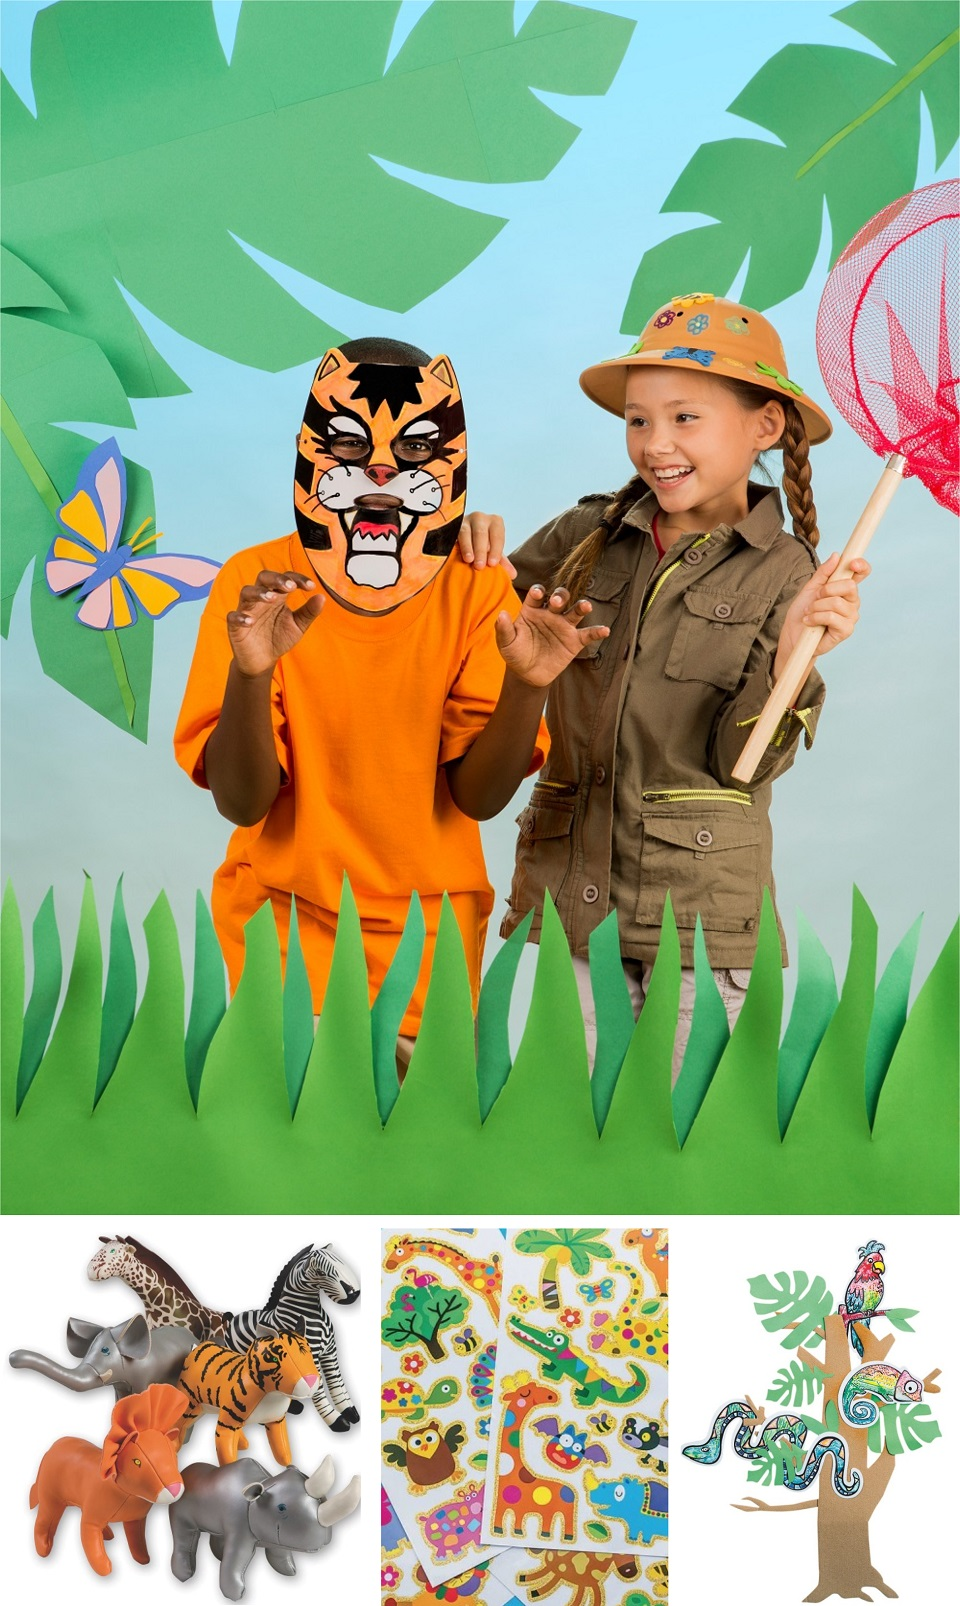 VBS 2019 themes roar in the wild